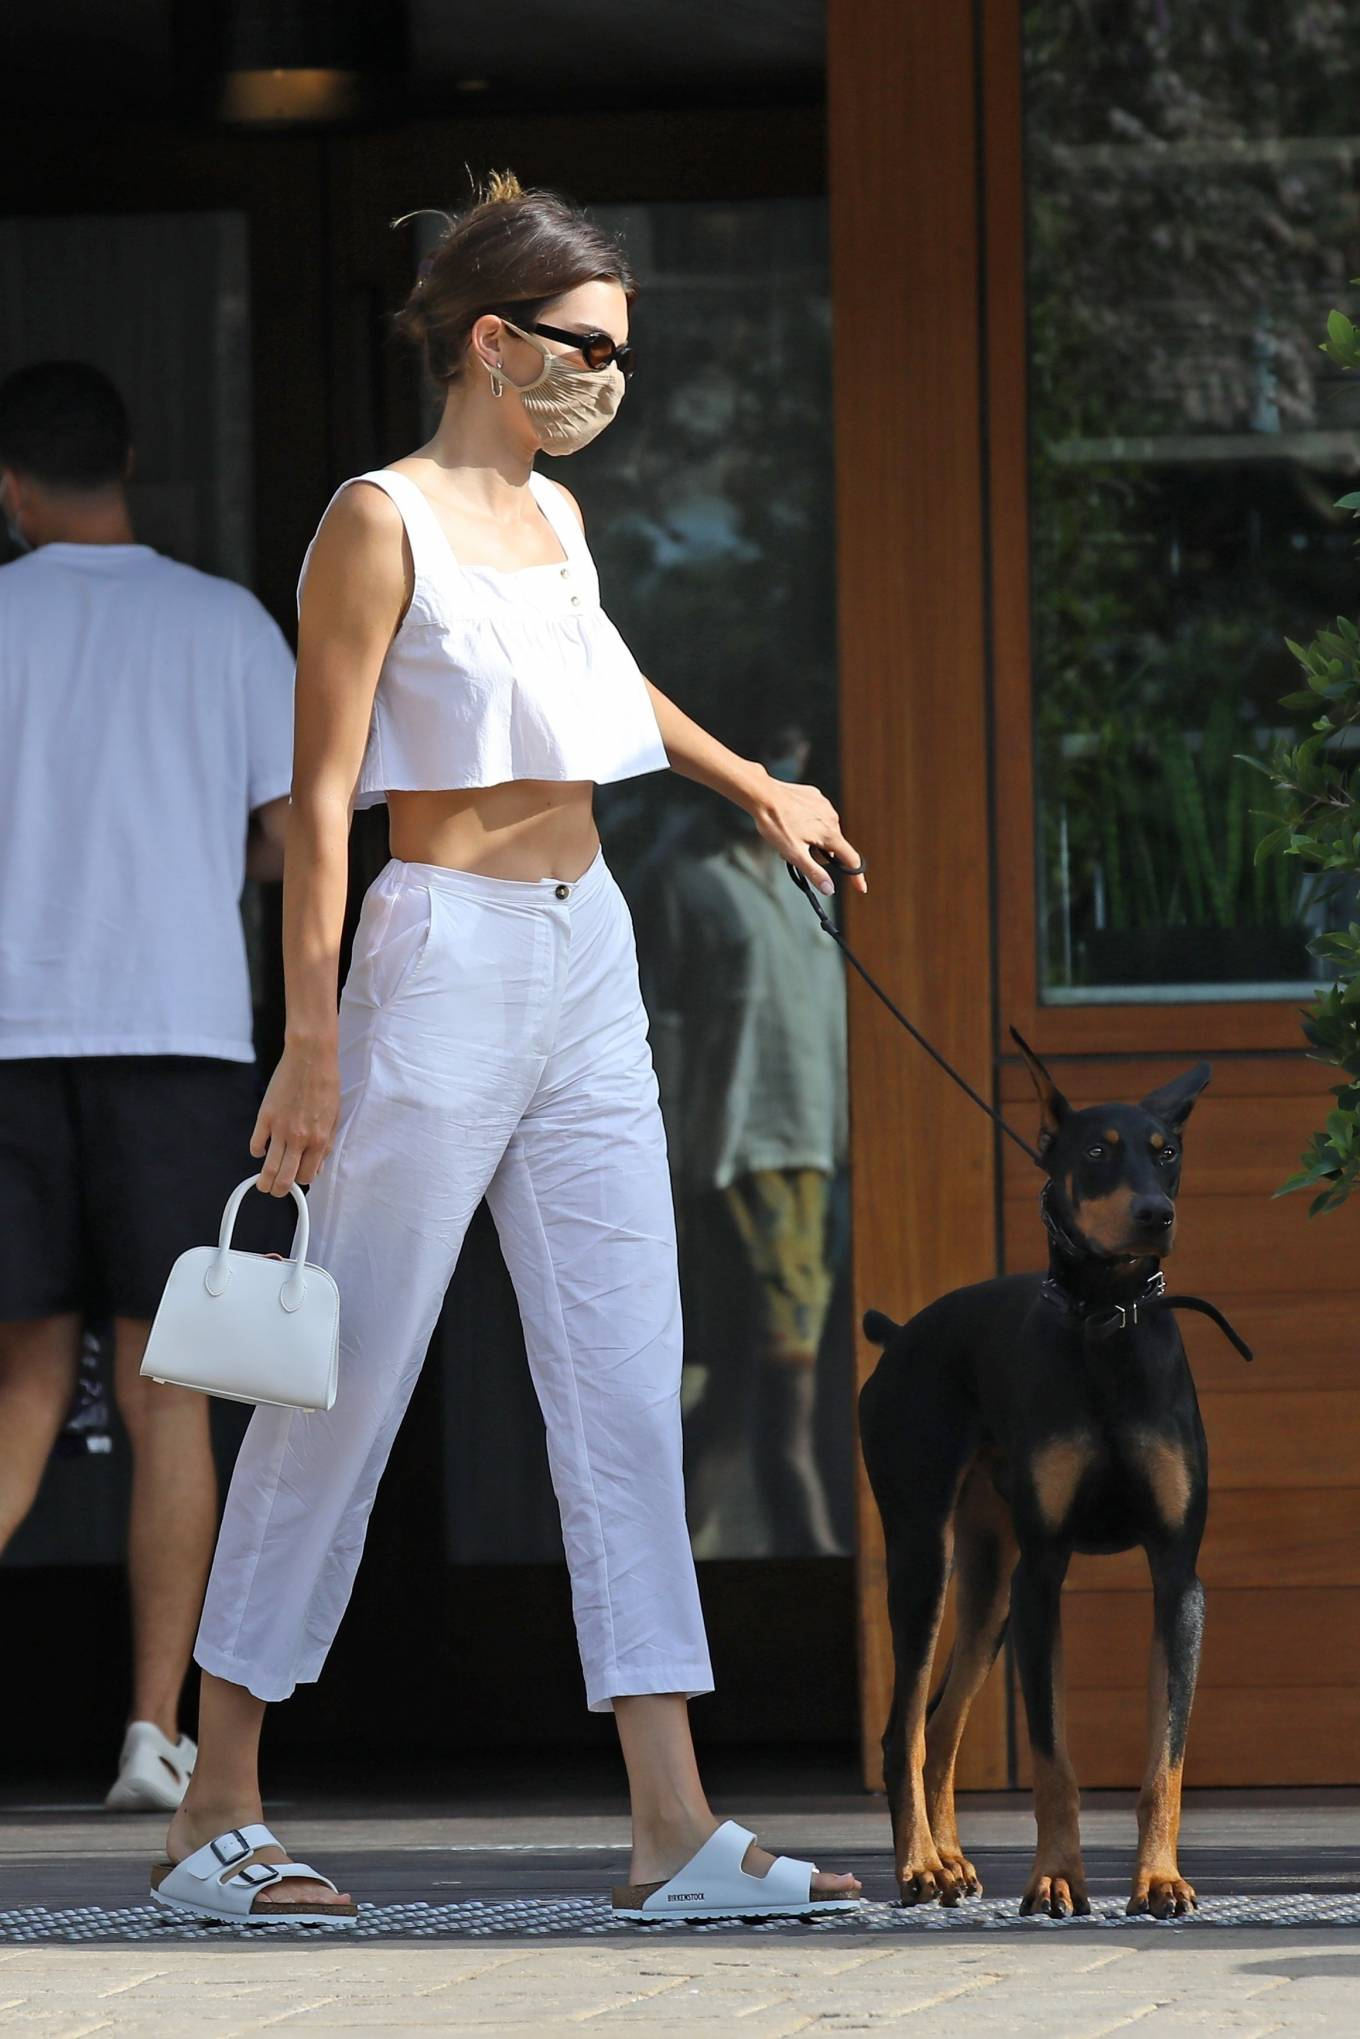 Kendall Jenner rocking white rubber open toe sandals with buckled ankle strap